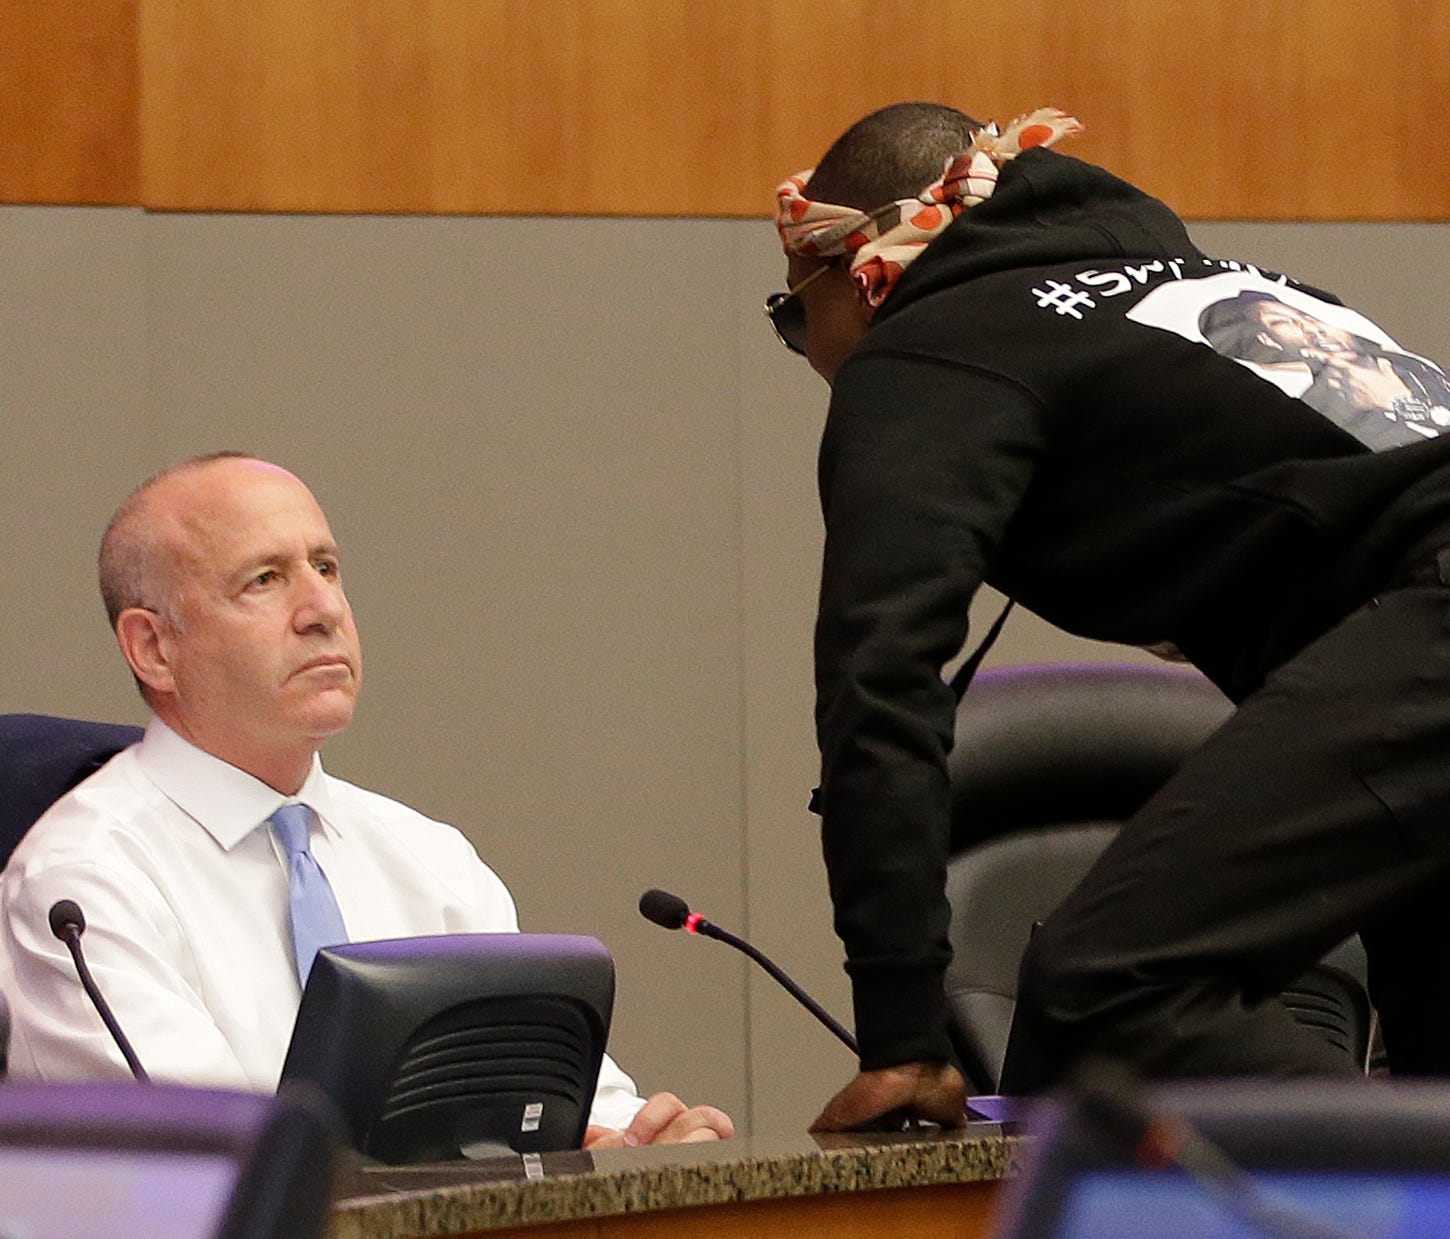 Stevante Clark jumps on the dais and shouts at Sacramento Mayor Darrell Steinberg, left, during a city council meeting, Tuesday, March 27, 2018, in Sacramento, Calif.